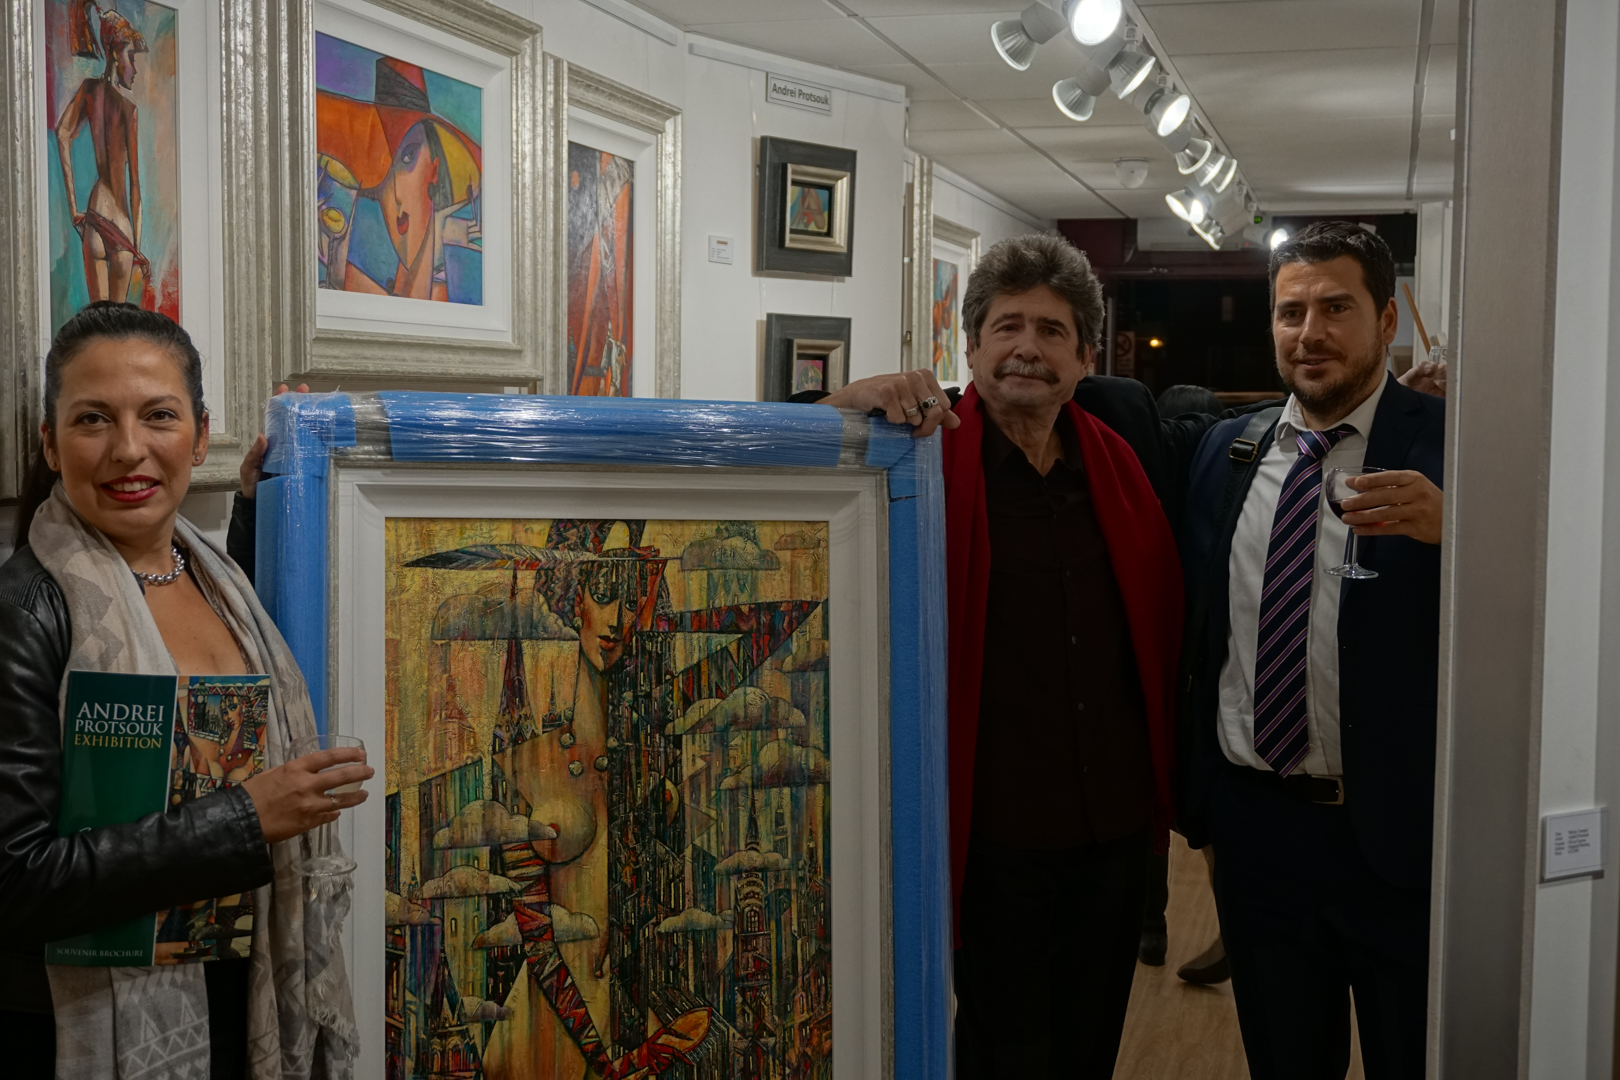 Collectors at Images in Frames